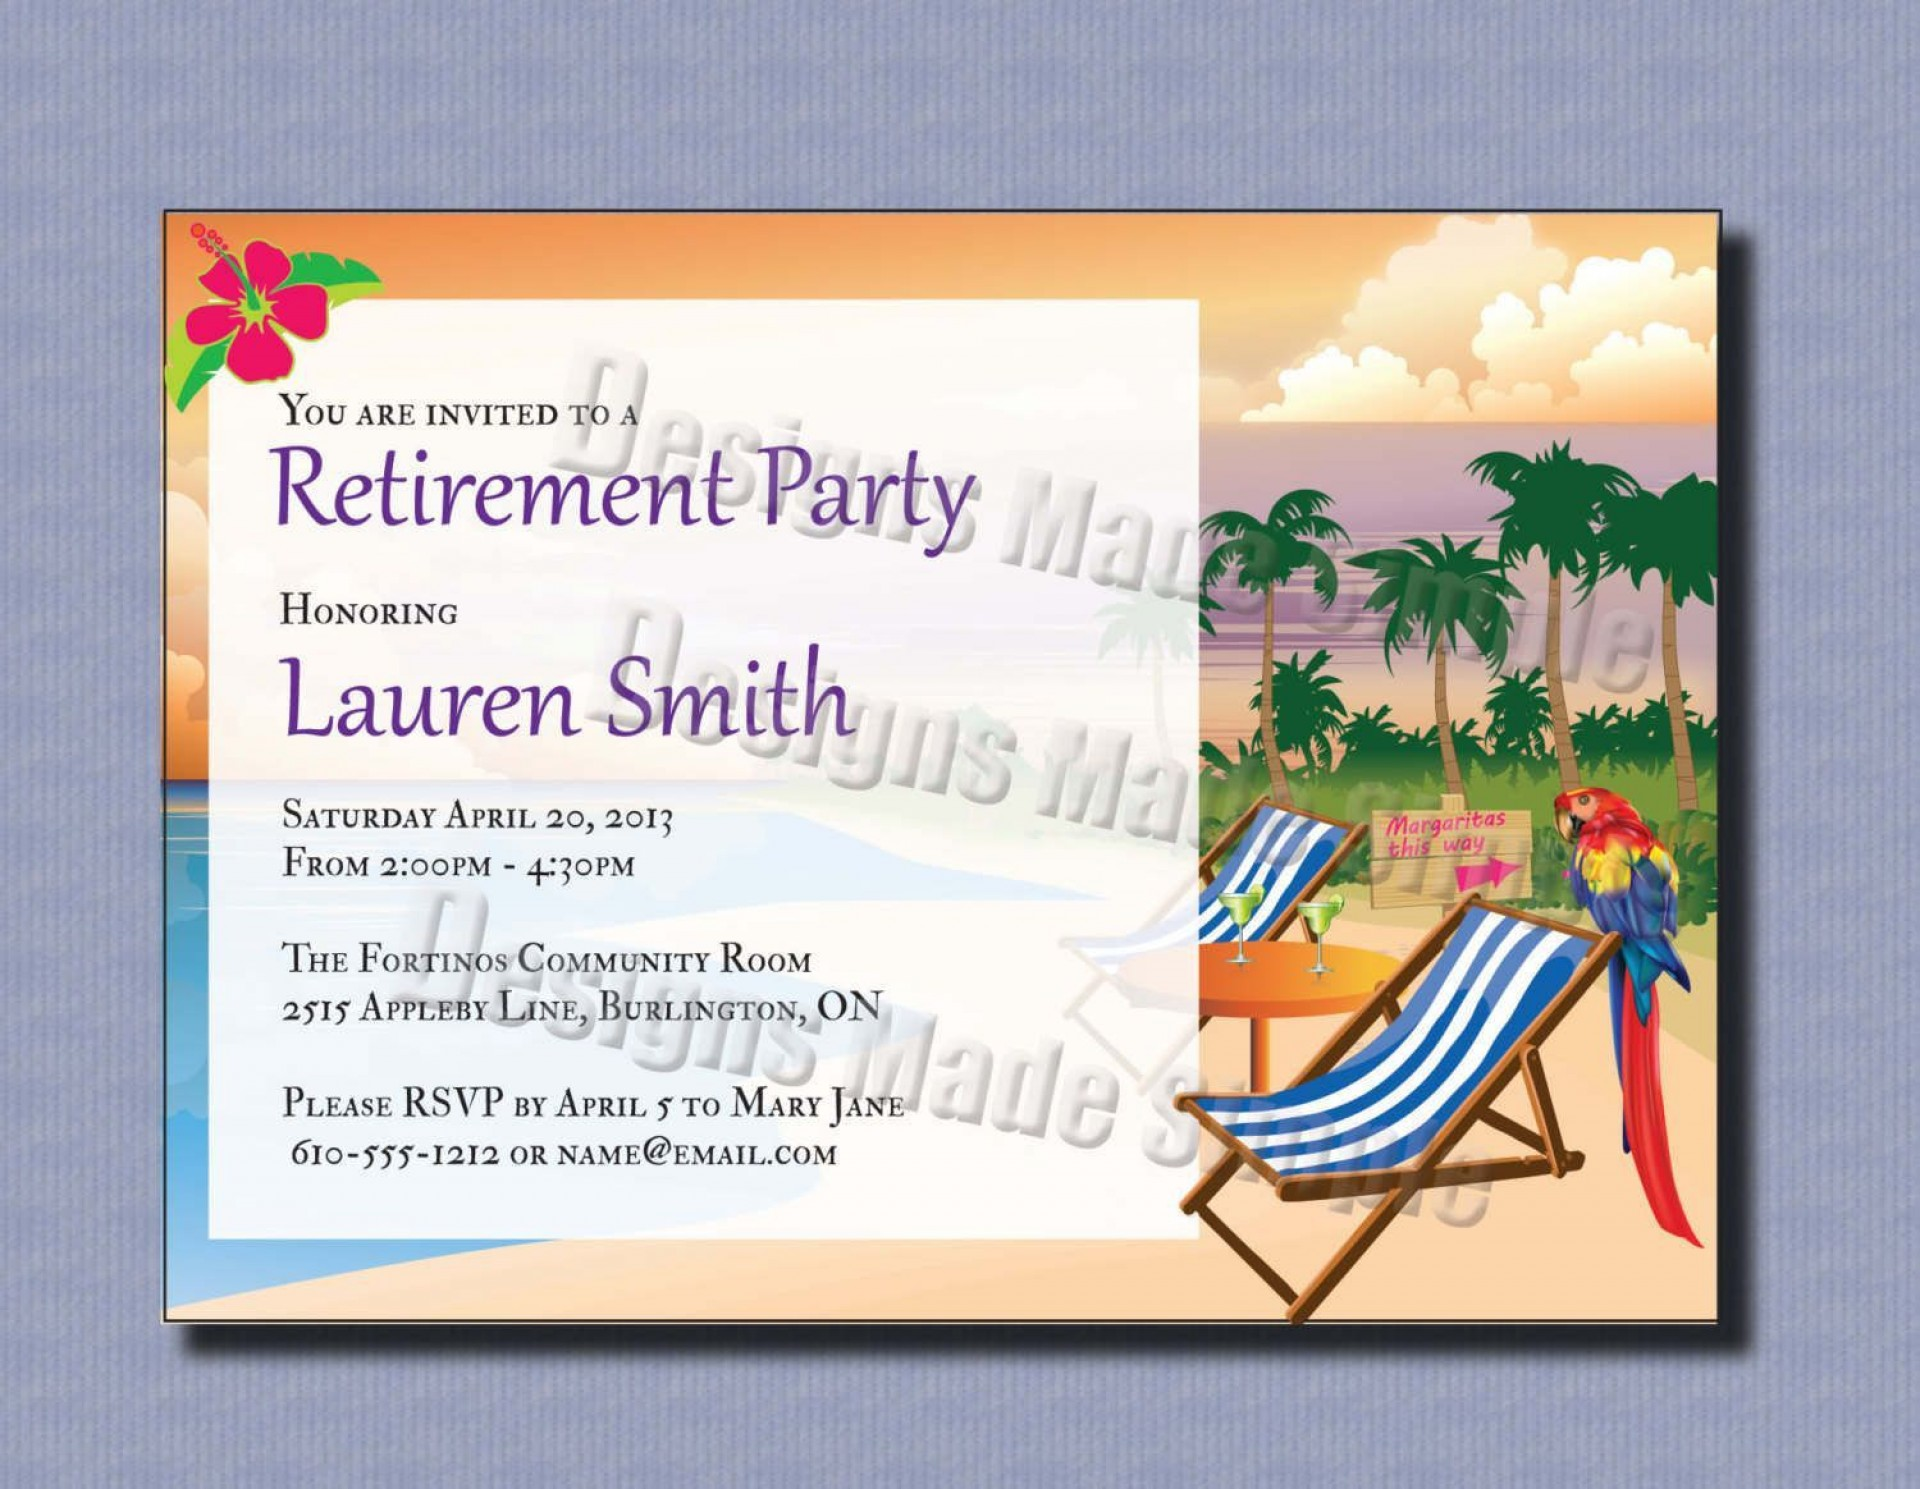 001 Striking Retirement Party Invitation Template Free Printable High Resolution 1920